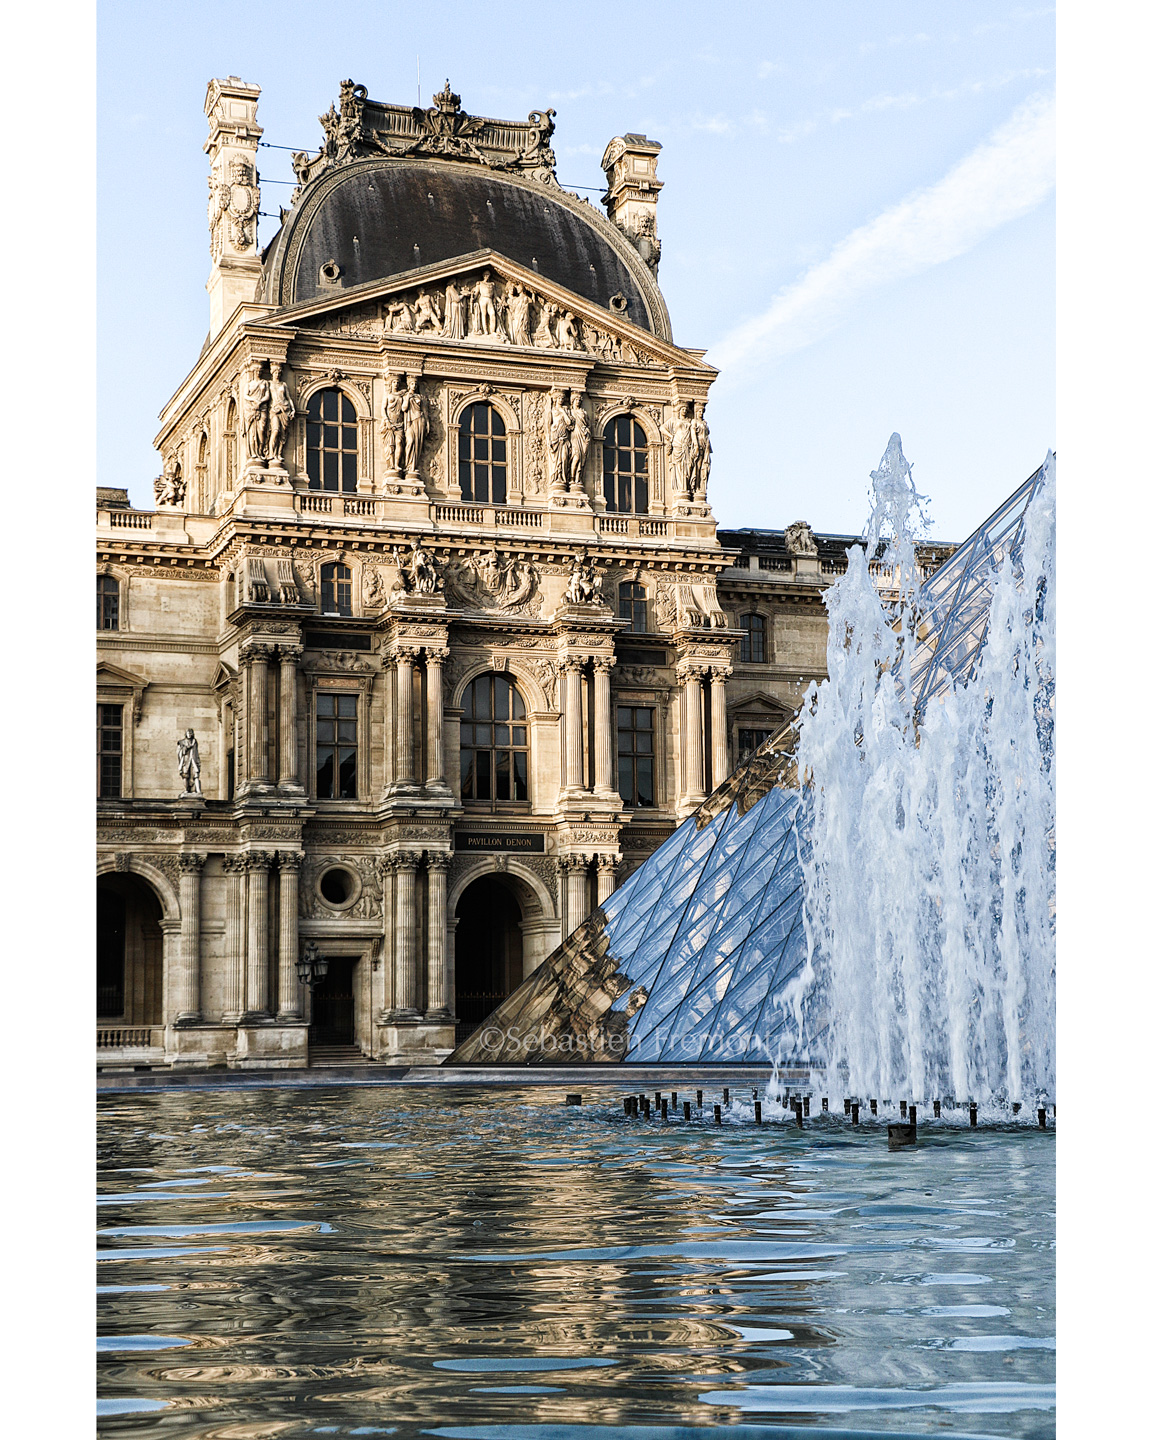 French Photographer Art Photography The glass pyramid and fountain at Louvre museum